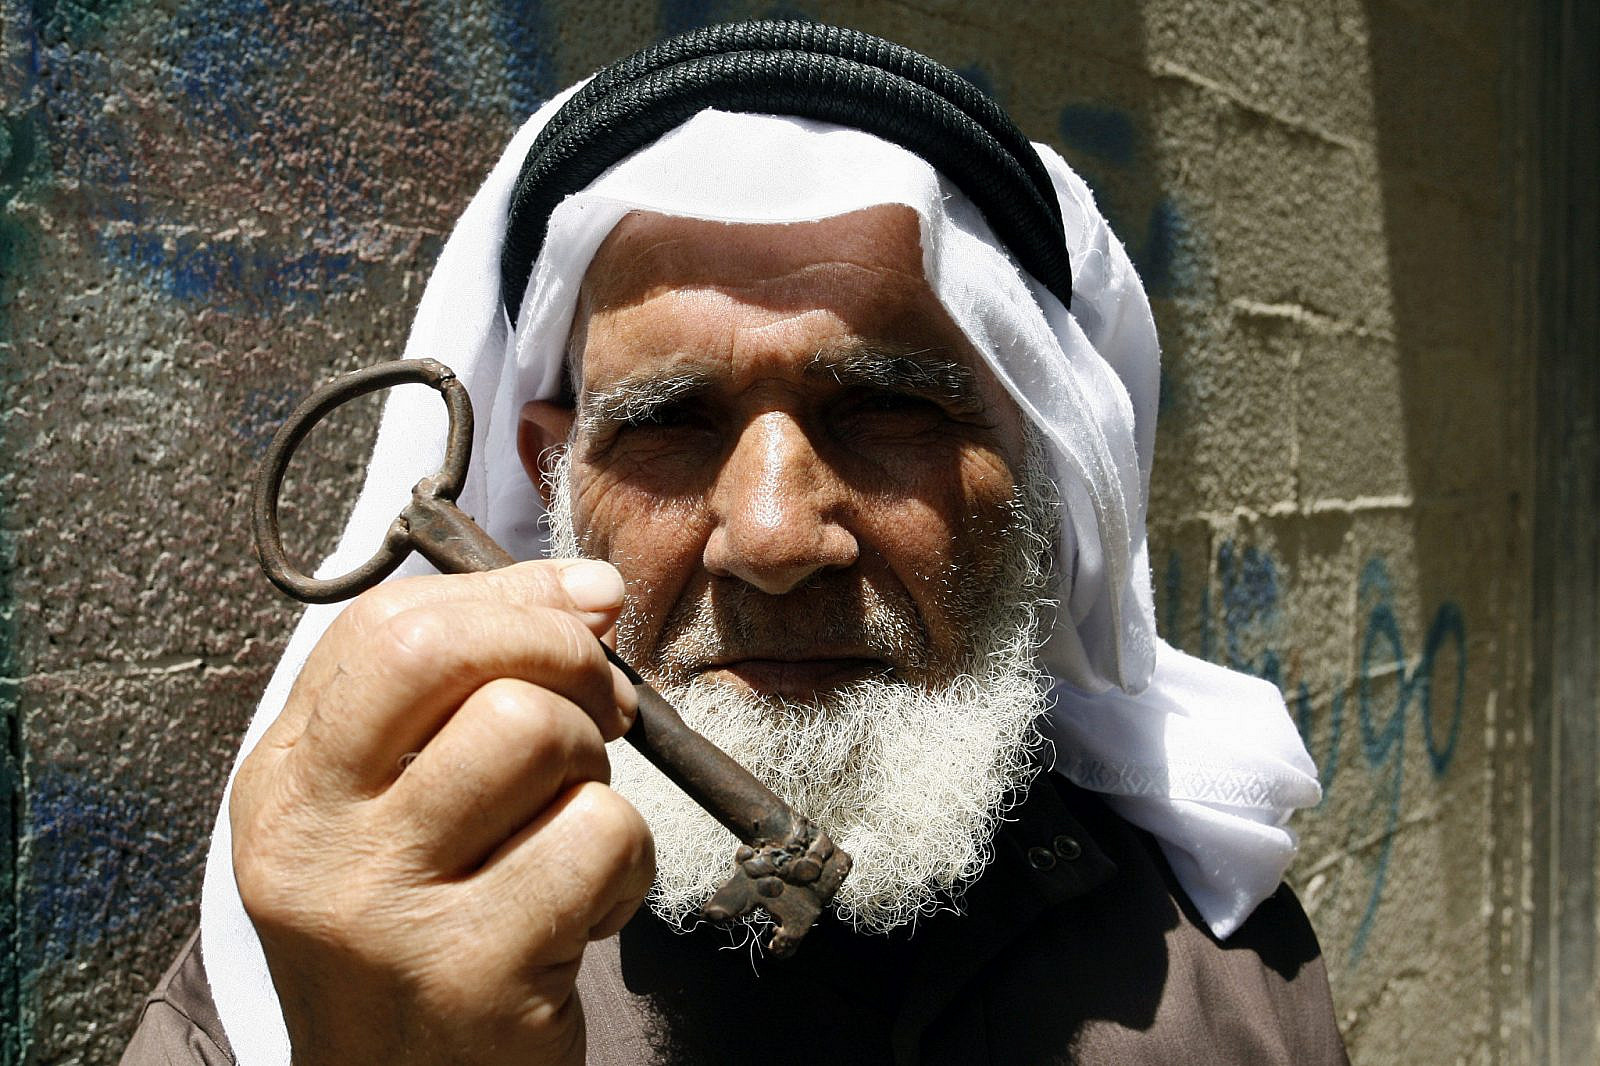 A Palestinian refugee, Saleh Abu Ross, 79 years old, from the Rafah refugee camp, holds up a key from his house in Beersheba, located in southern Israel, during a rally in Rafah, southern Gaza Strip, May 12, 2013. (Abed Rahim Khatib/Flash90)